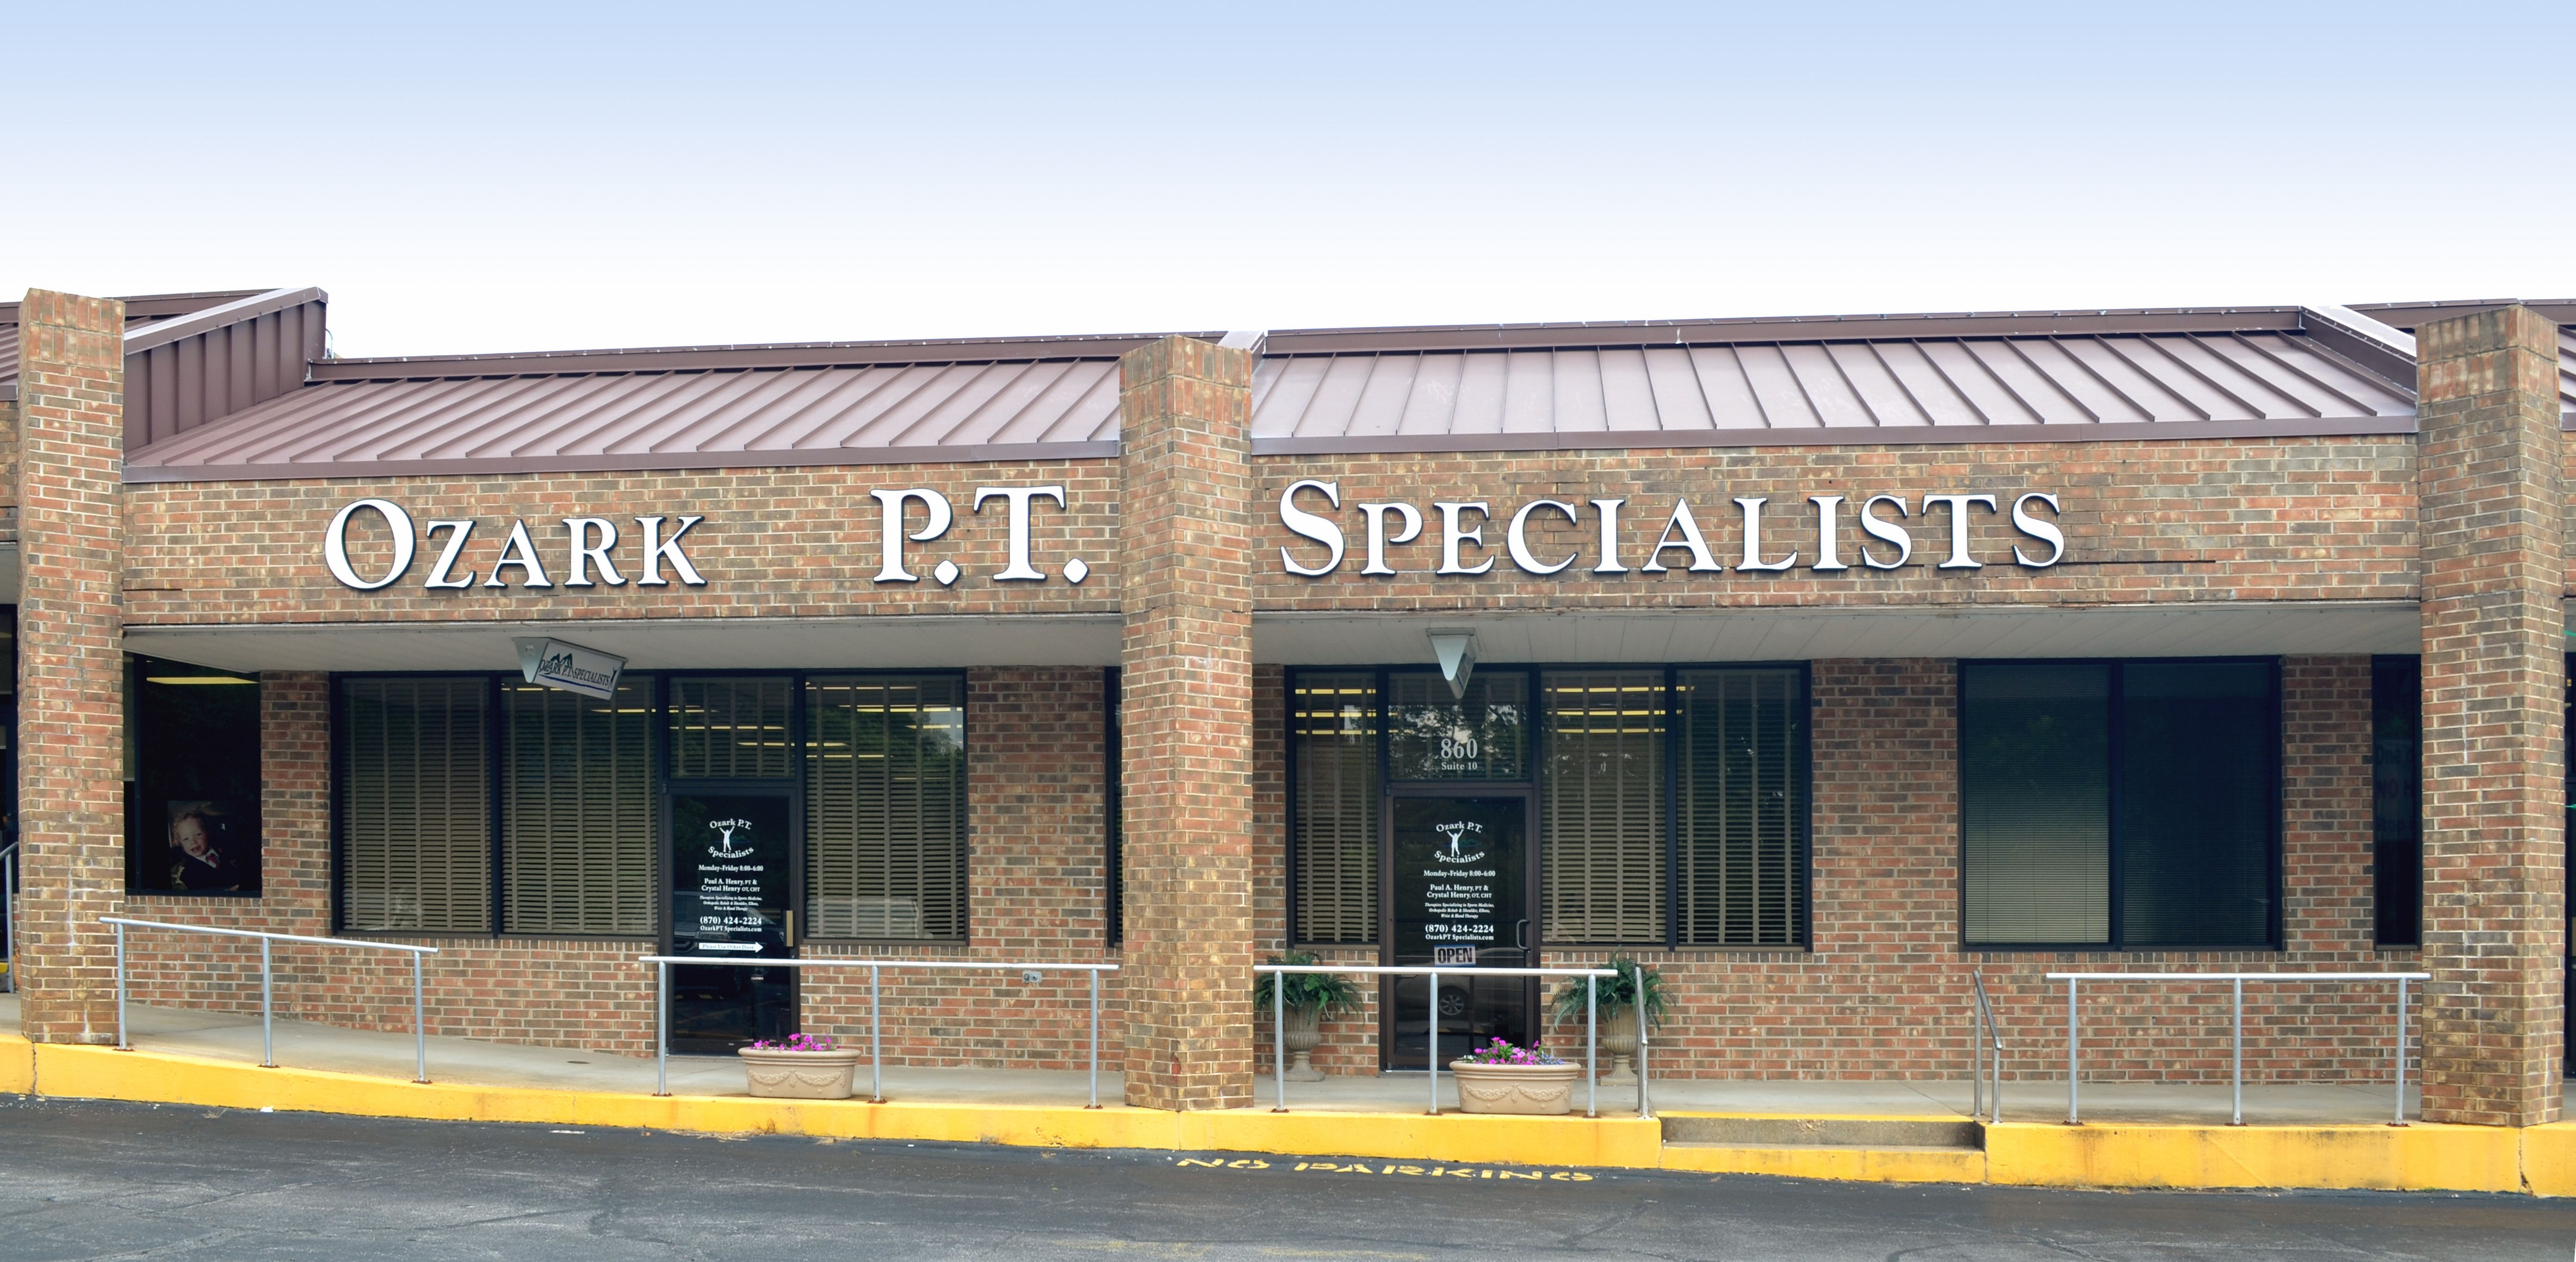 Ozark P.T. Specialists office building